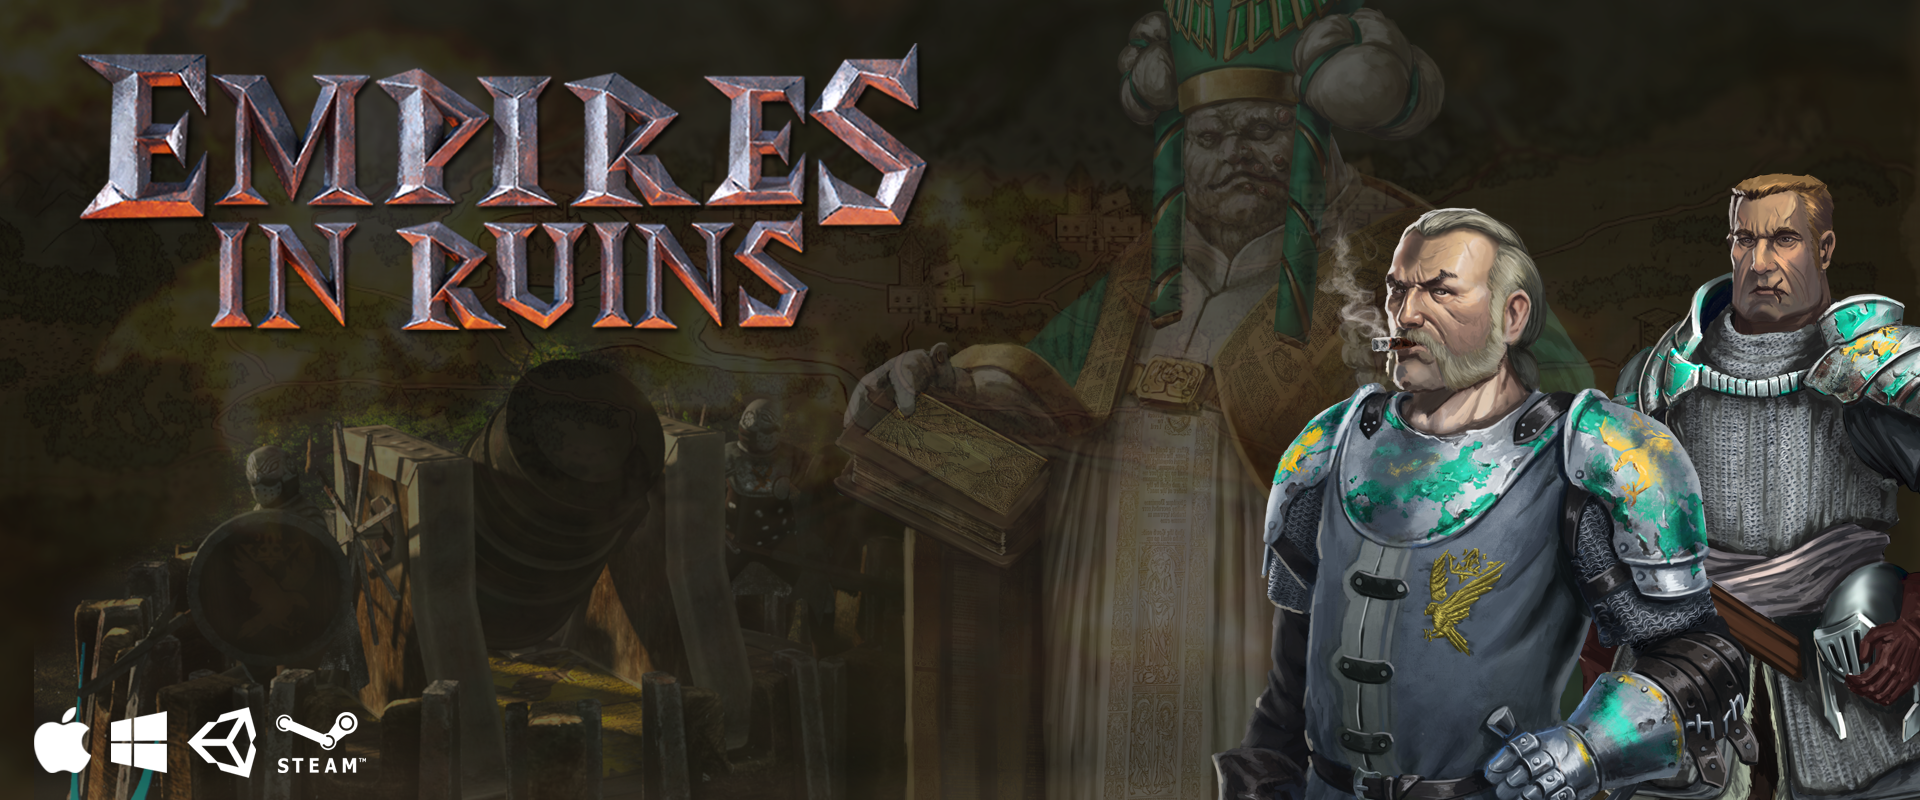 Empires in Ruins - Empires in Ruins is a turn-based, story